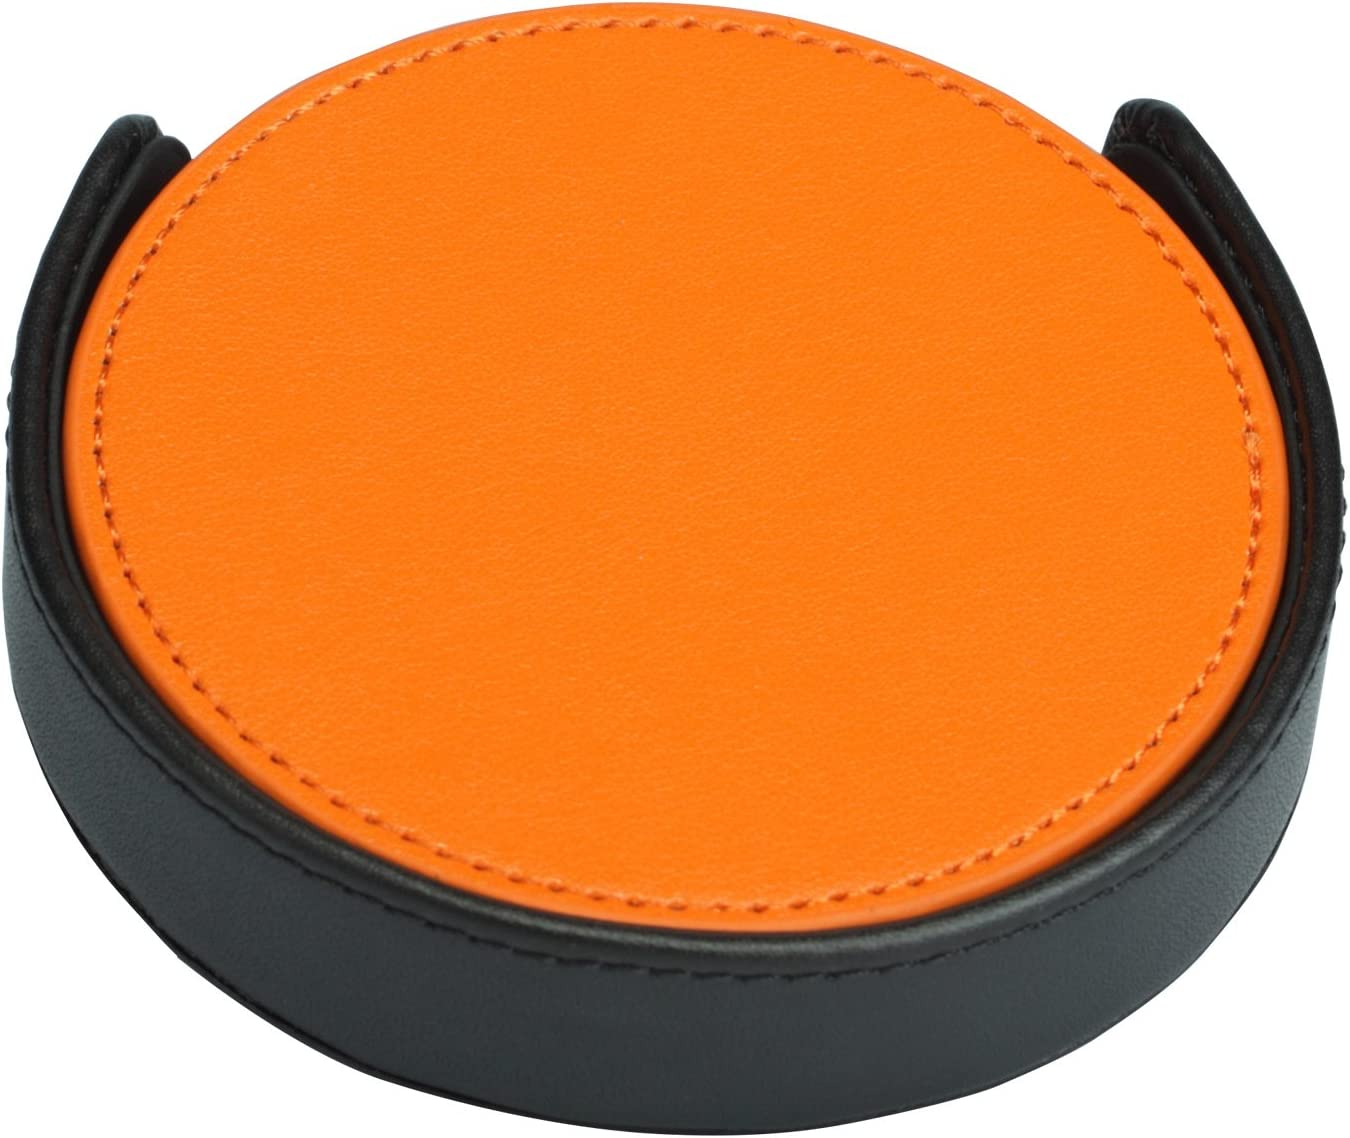 Faux Leather Coaster 4 Pieces Orange Coaster with Black Holder by Magic Vosom